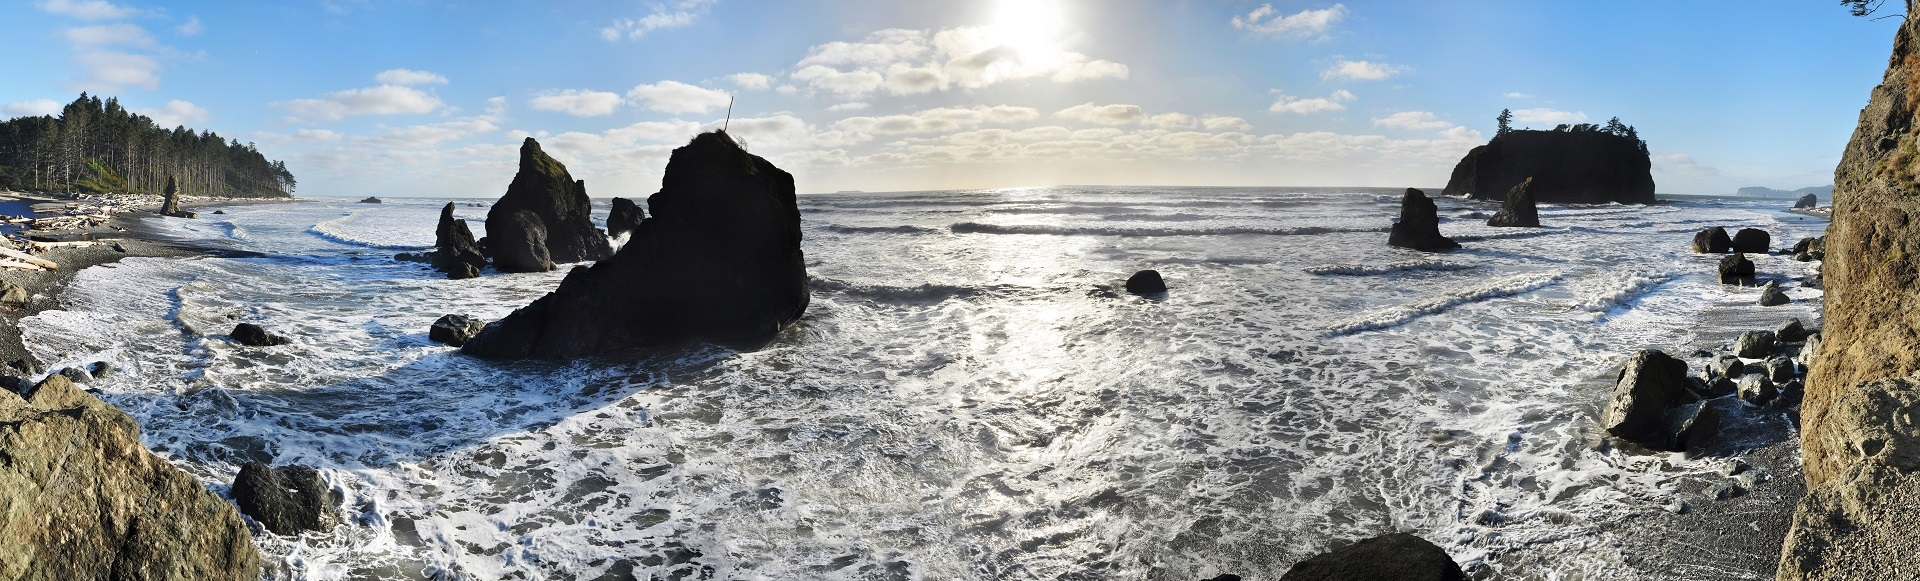 Blog Page Image is of Late afternoon in September on the shores of Ruby Beach in Olympic National Park